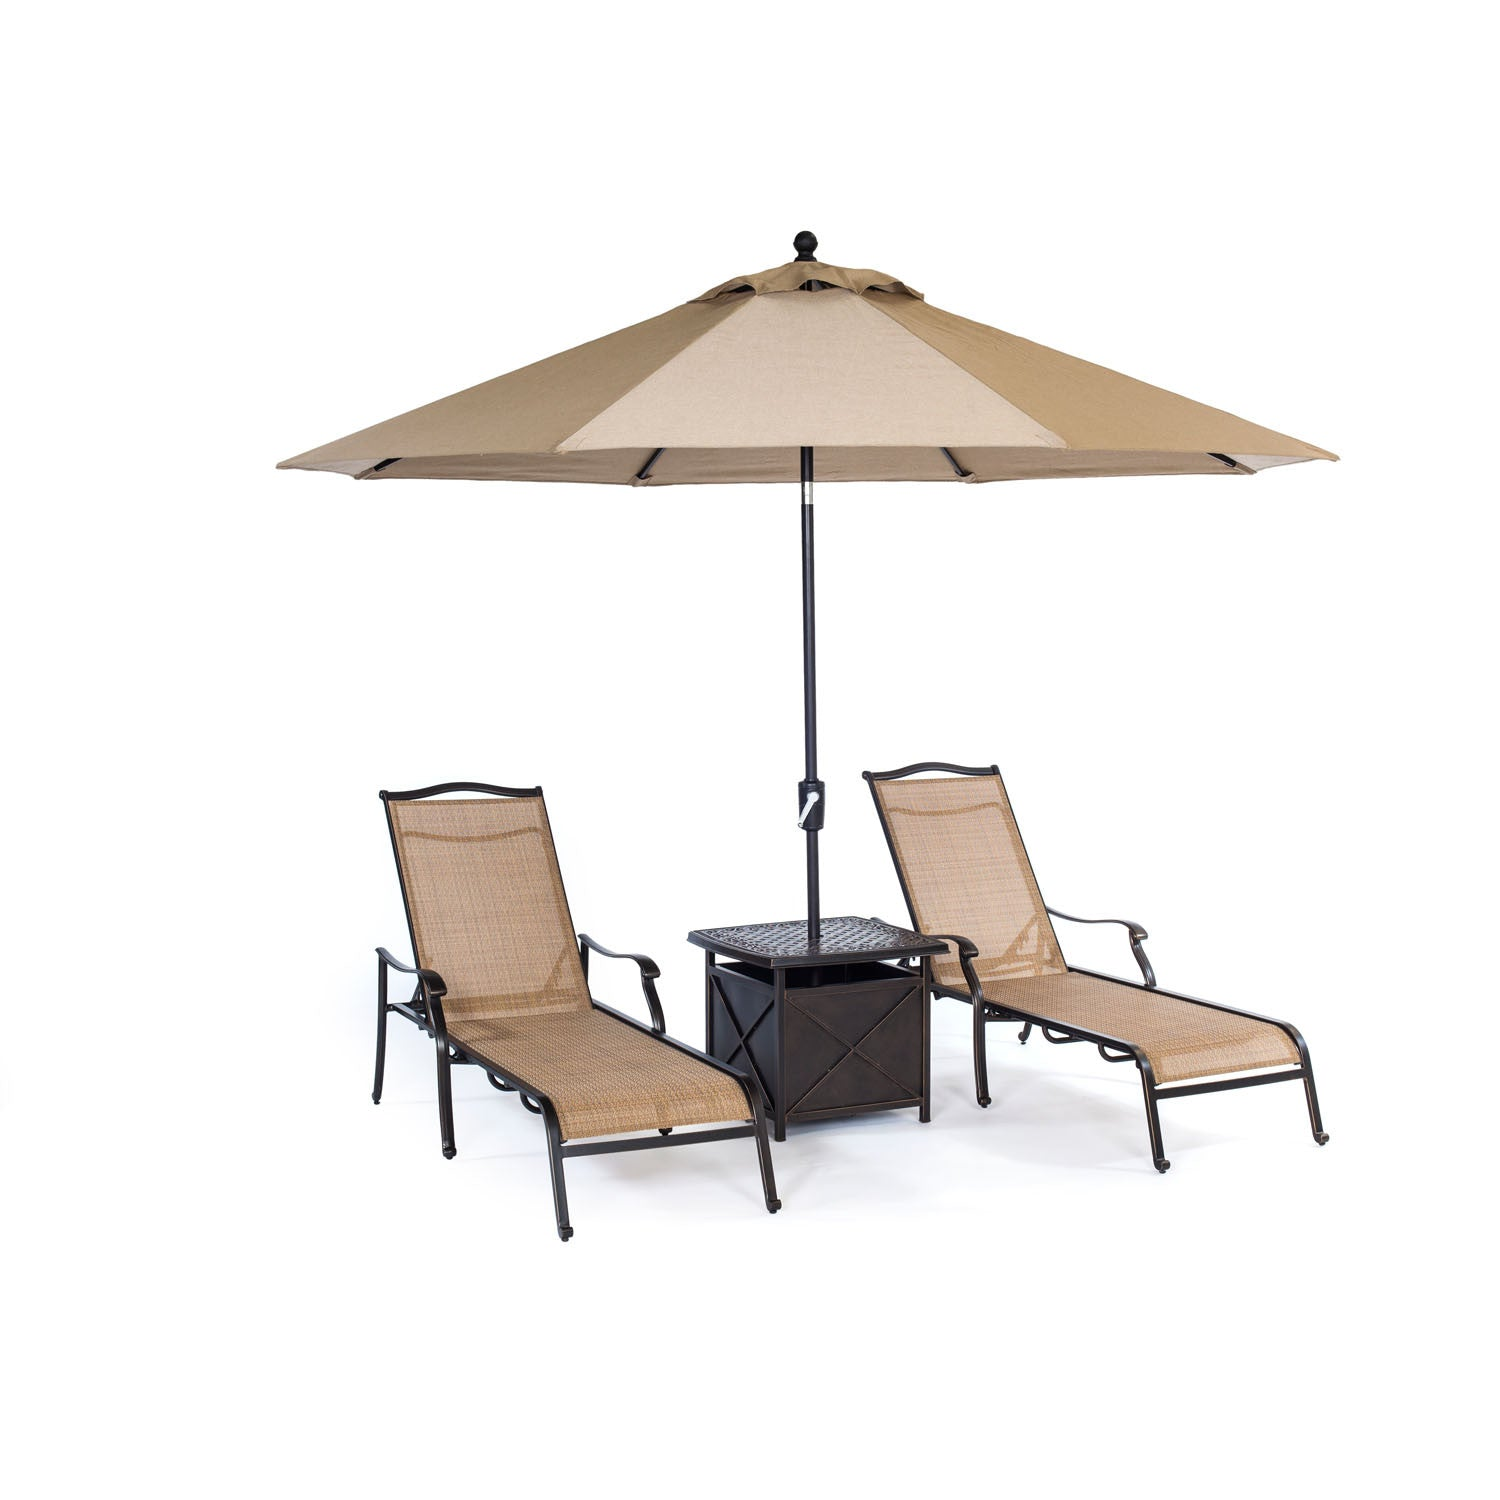 Monaco 4pc Sling Chaise Chair set 2 Chaise Chairs 1 Umbrella